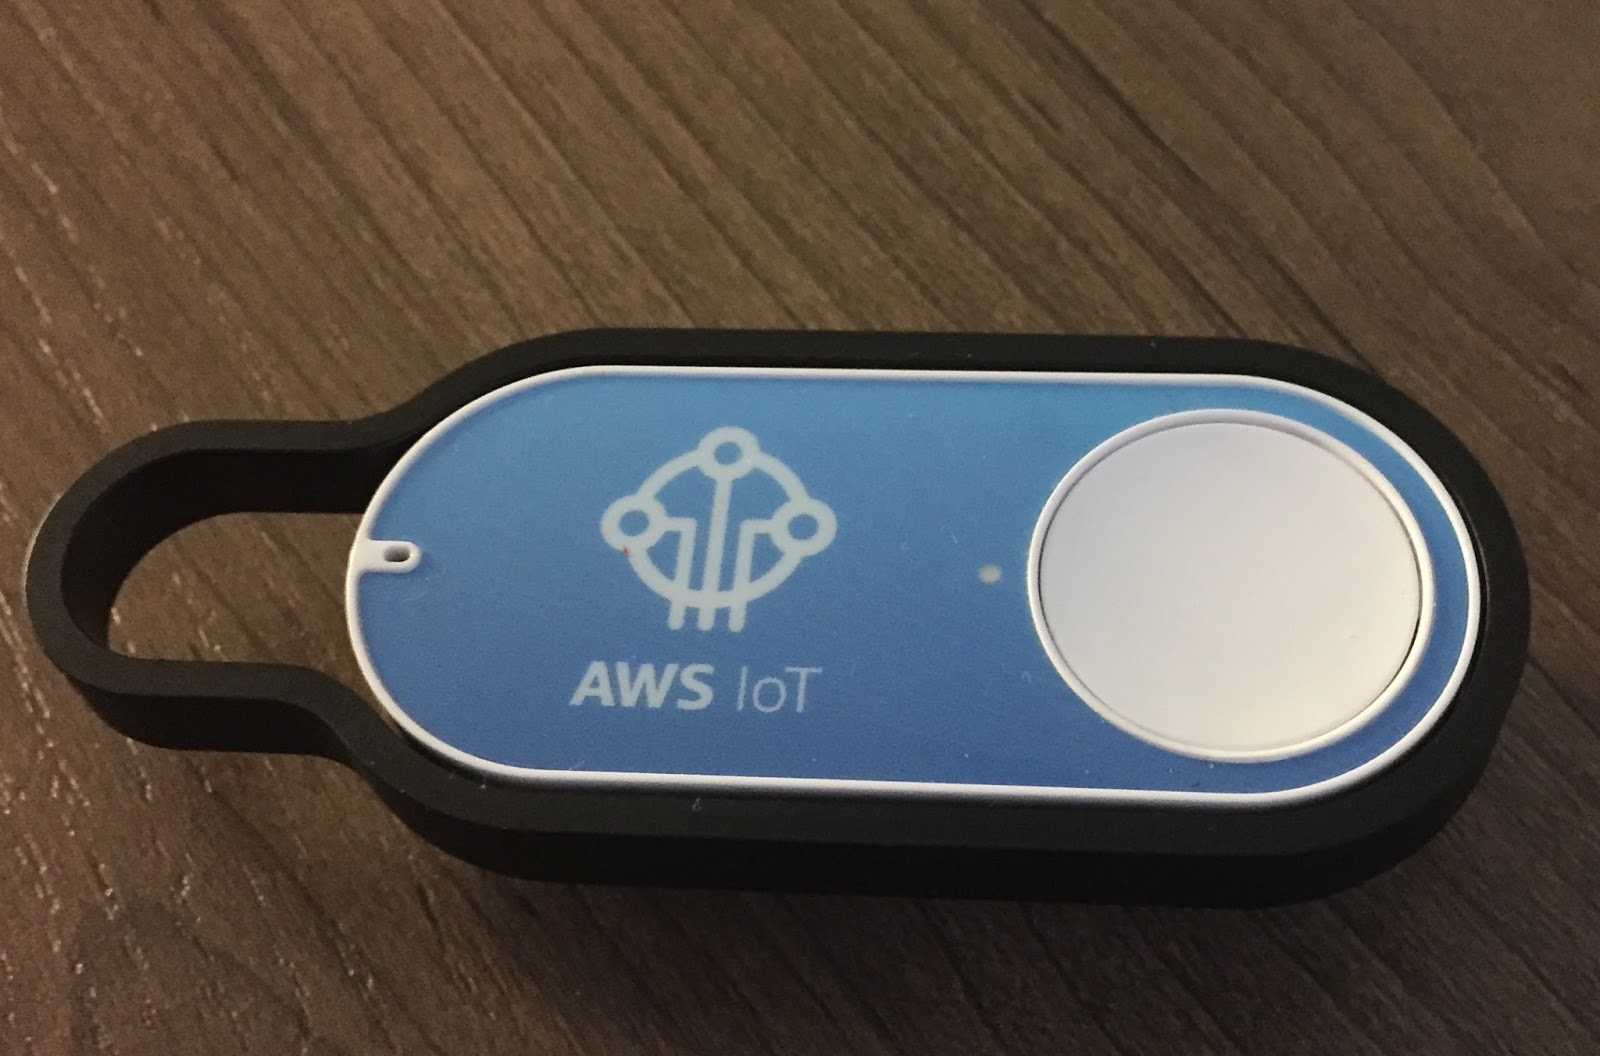 Sap hana tutorial material and certification guide the aws iot button and sap hana express edition baditri Image collections